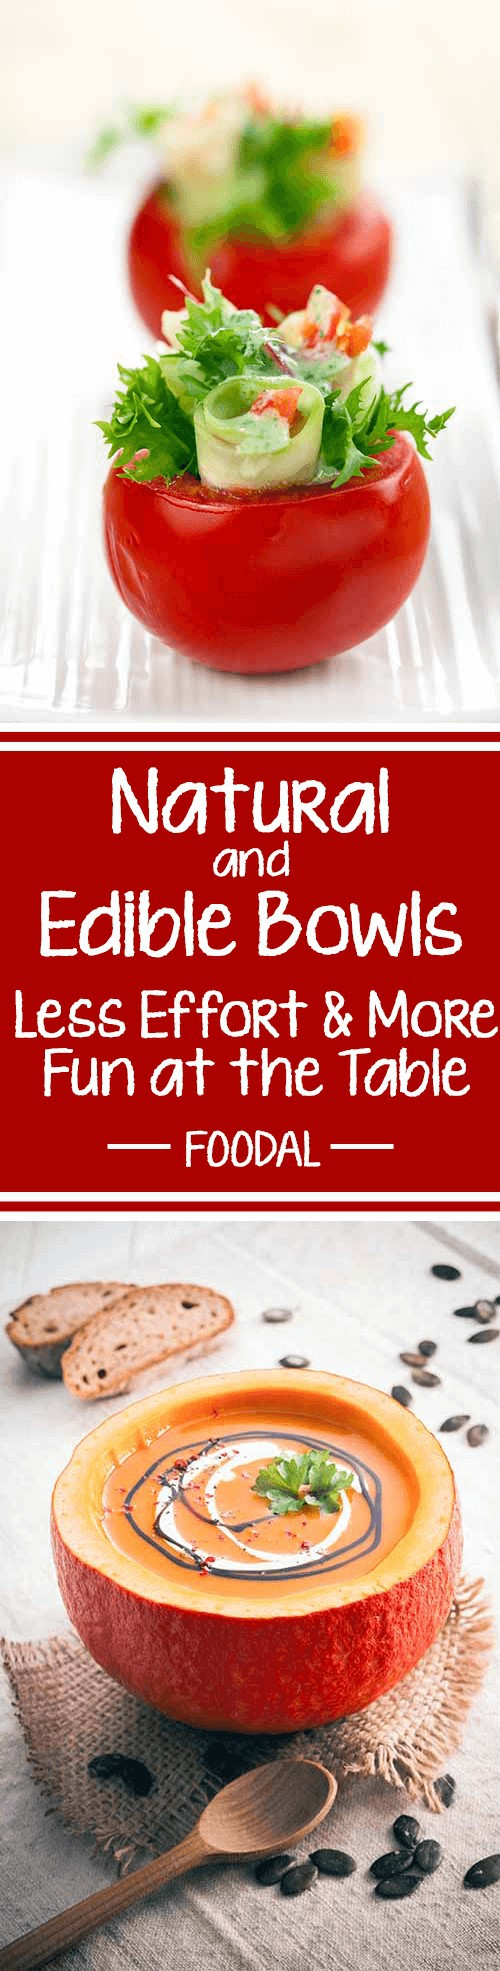 Do you love being creative in the kitchen? Are you also tired of doing dirty dishes – while beloved guests share in wonderful conversations you miss out on? Keep it simple, and use fruits, veggies, and more as edible bowls to serve salad, soups, desserts – you name it. Take a look at the best ideas for savory and sweet edible bowls here! https://foodal.com/knowledge/paleo/natural-edible-bowls/